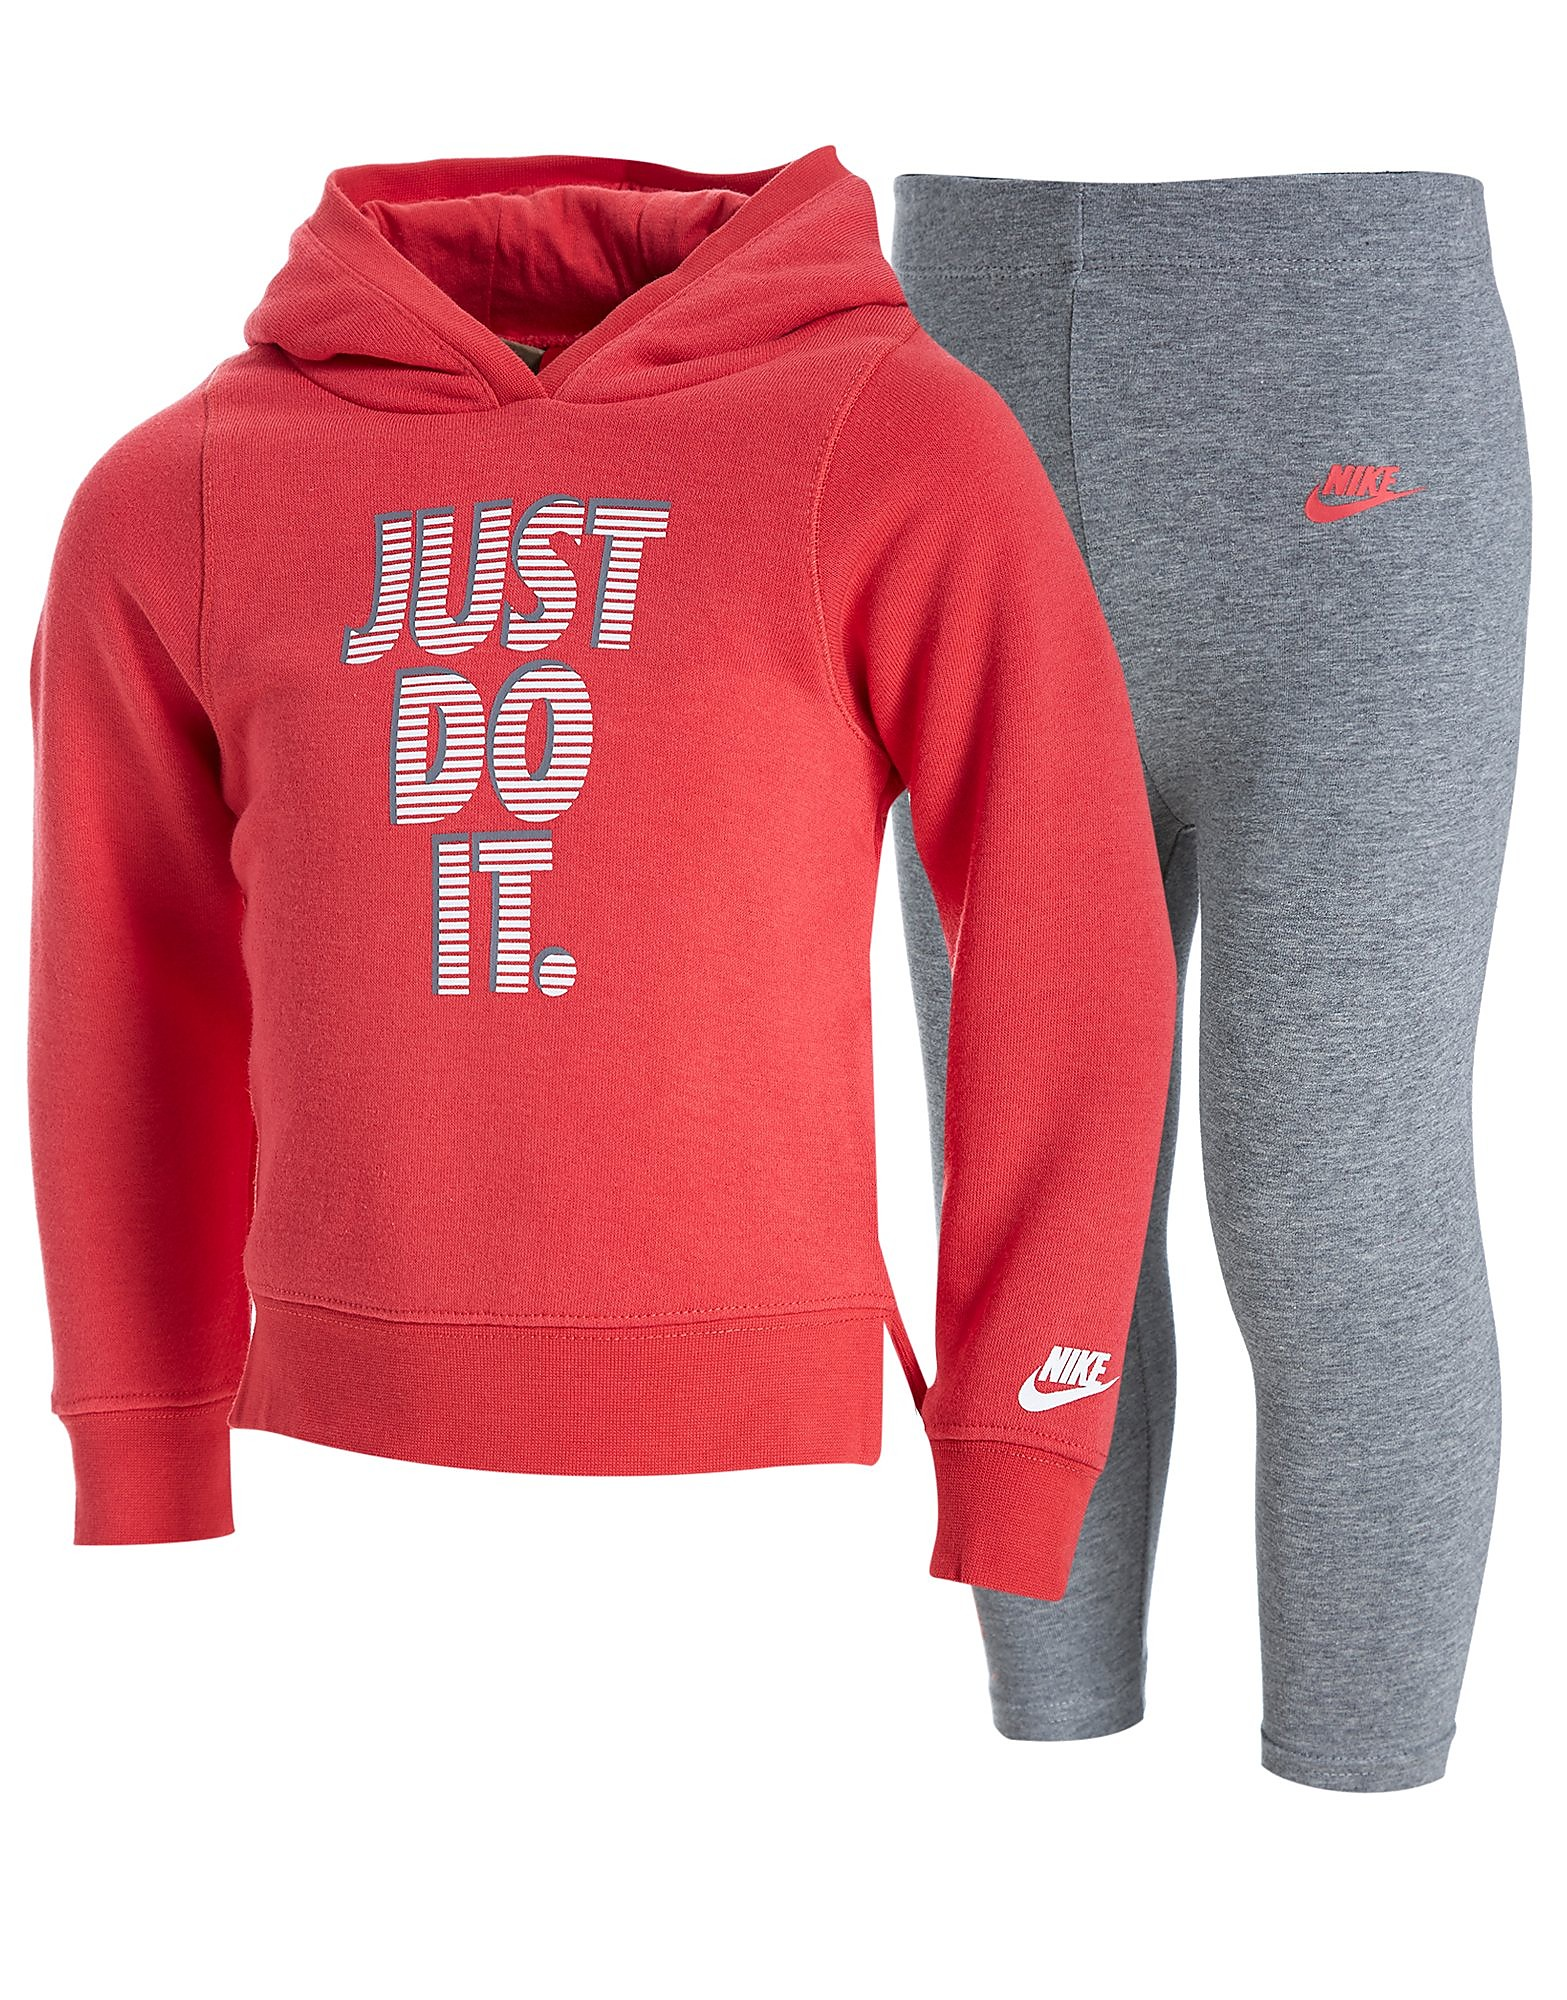 Nike Ensemble Sweat à capuche / Legging Just Do It Girls Bébé